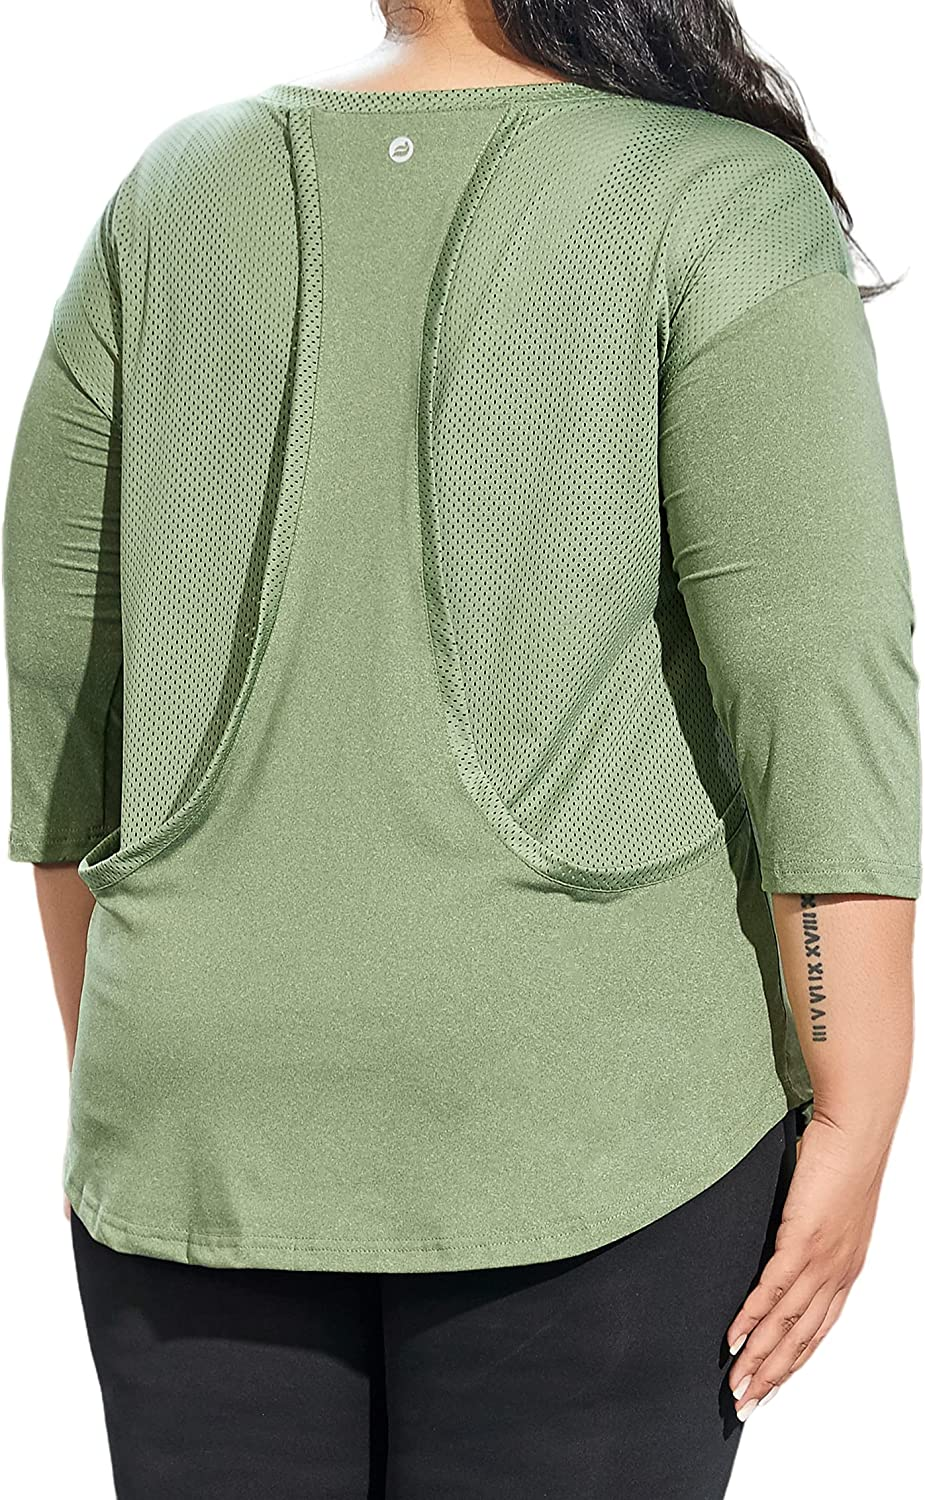 Women's Plus Size Mesh Workout Tops 3/4 Sleeve Sport Tee Racerback Athletic Yoga Gym Shirts